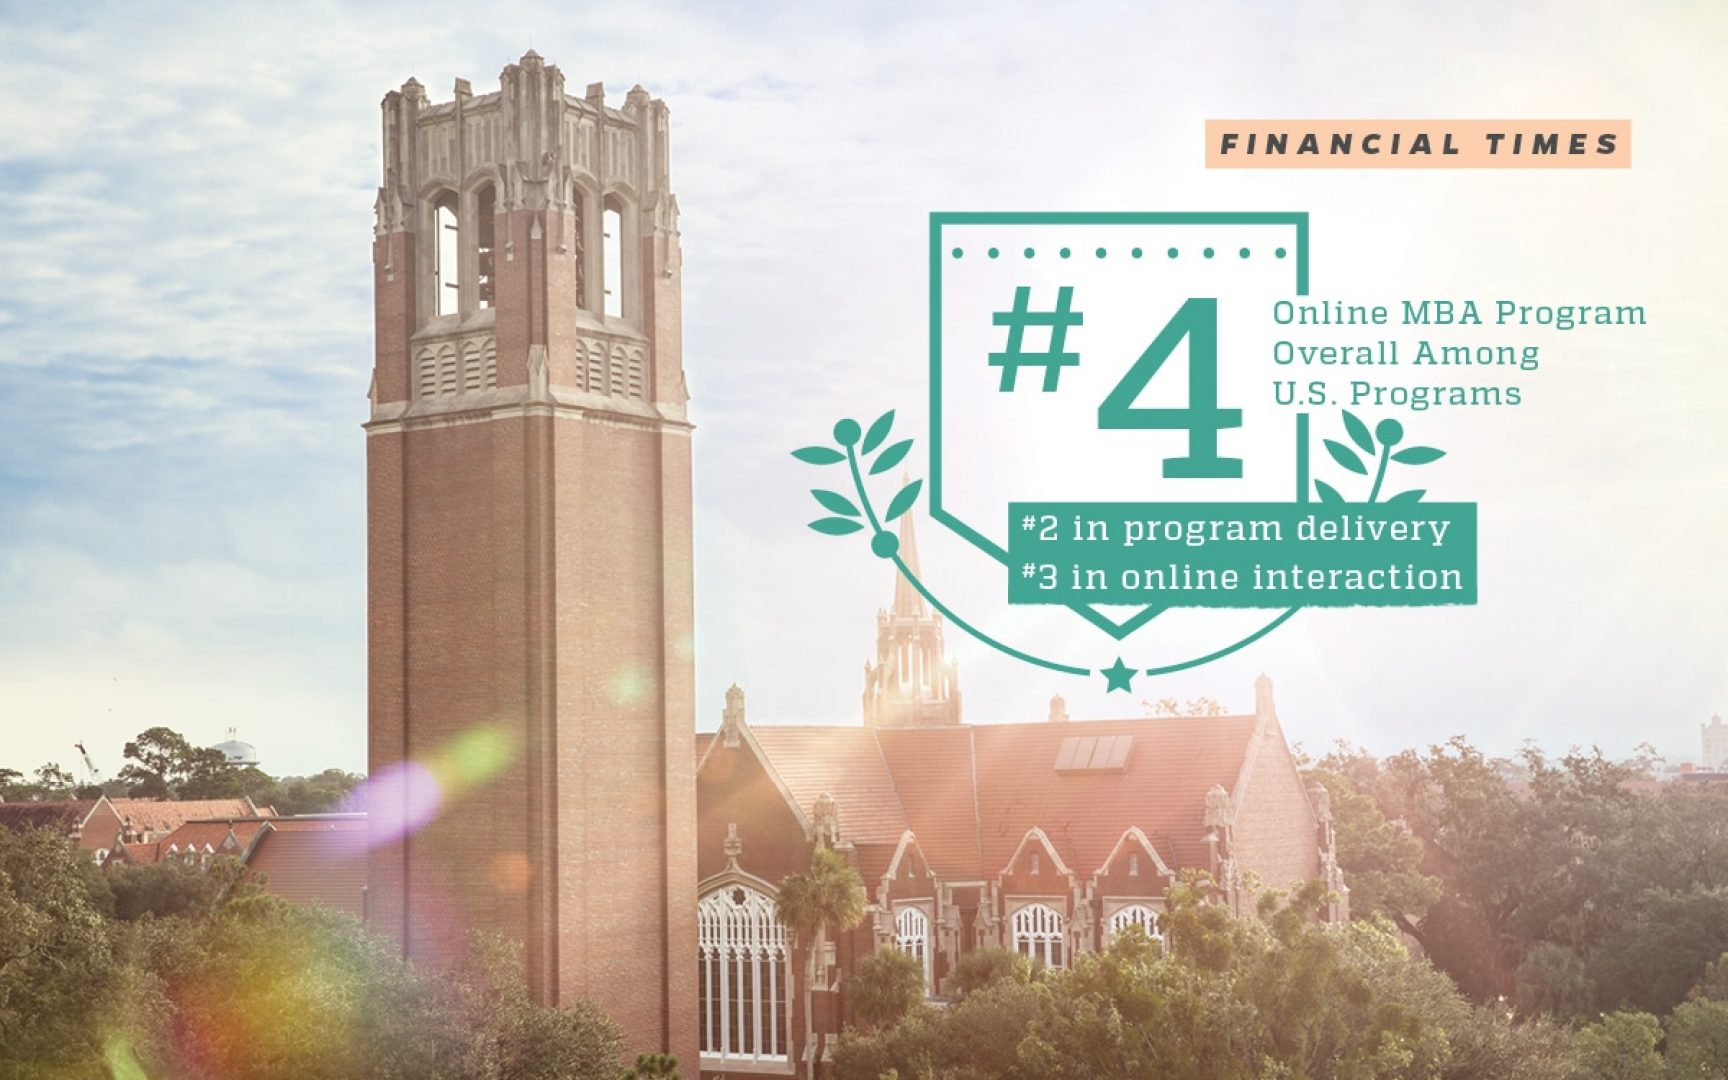 Century Tower with text #4 Online MBA Program Overall Among US Programs Financial Times